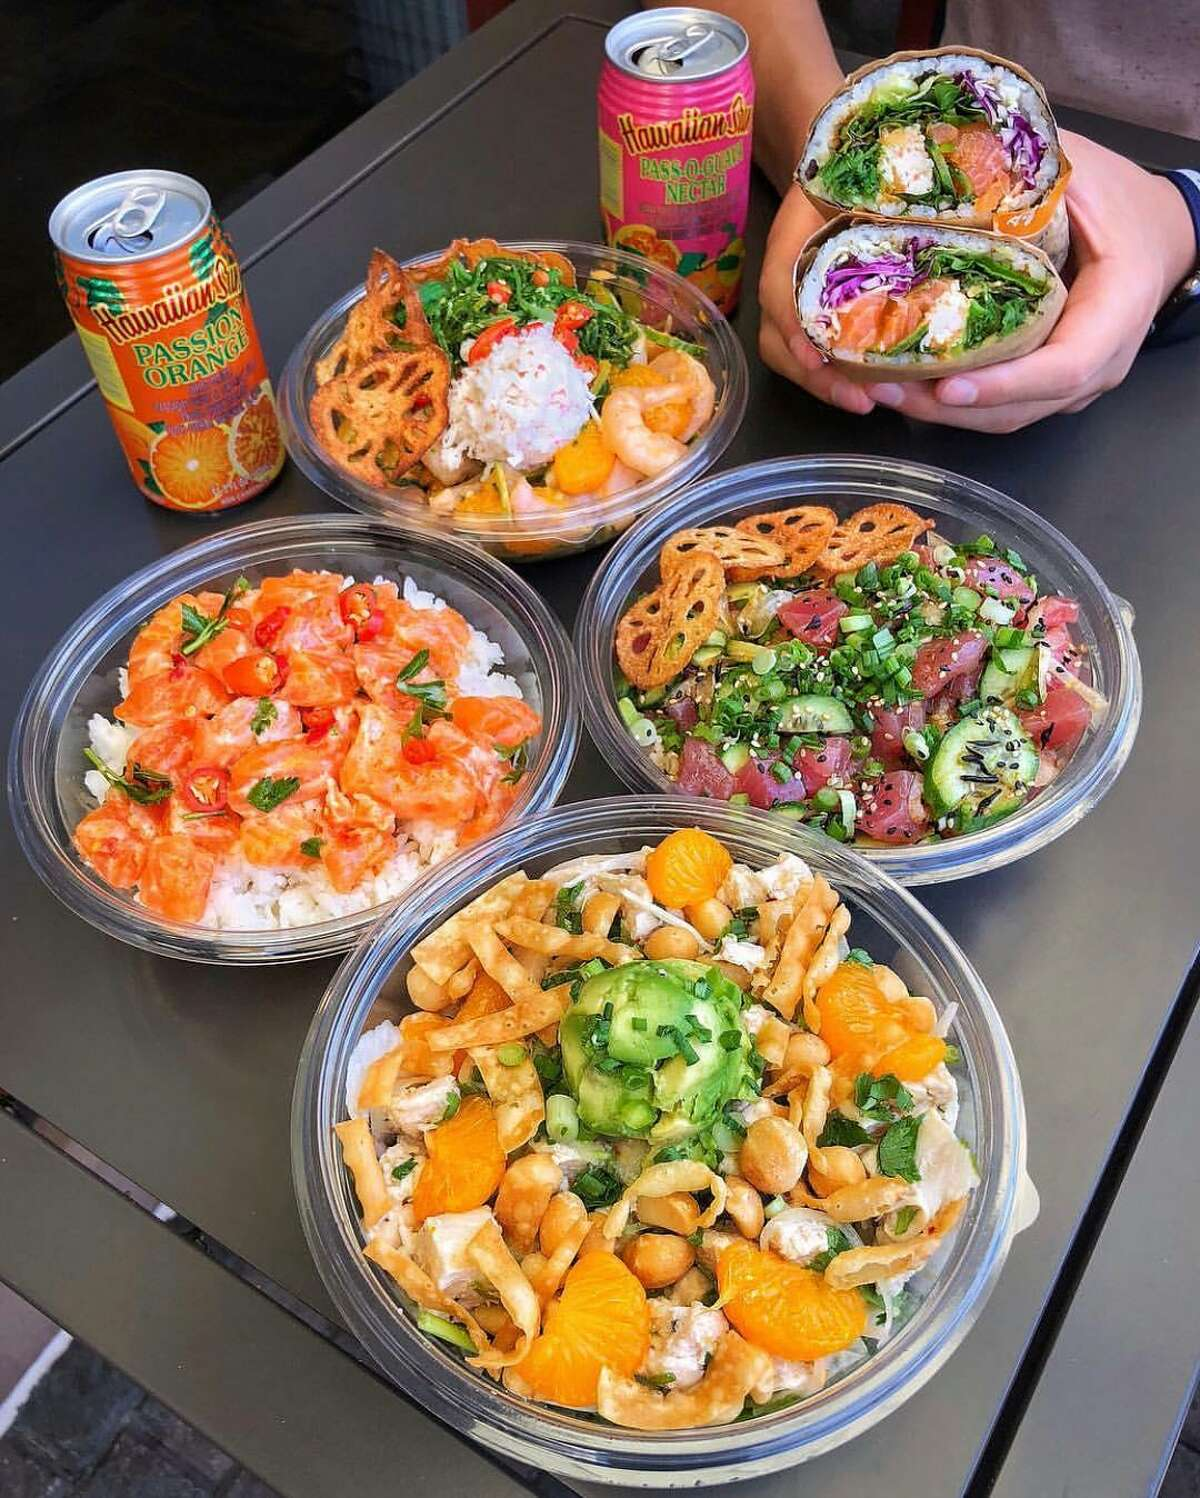 Pokeworks in Wilton serves colorful bowls of food with endless combitions.